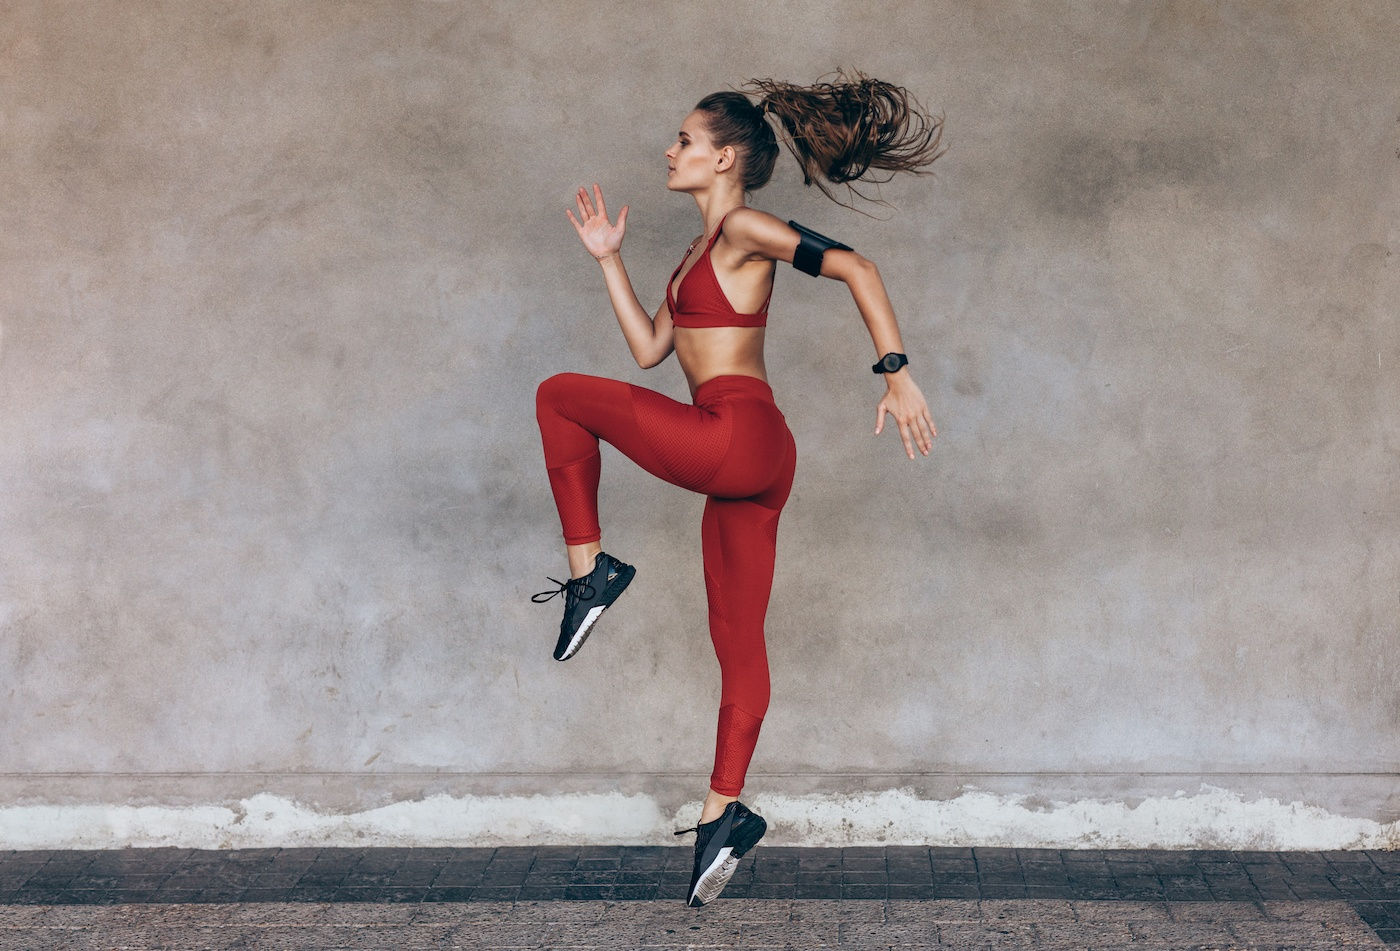 This super-intense plyometric move combines the two hardest glutes exercises into one killer butt workout